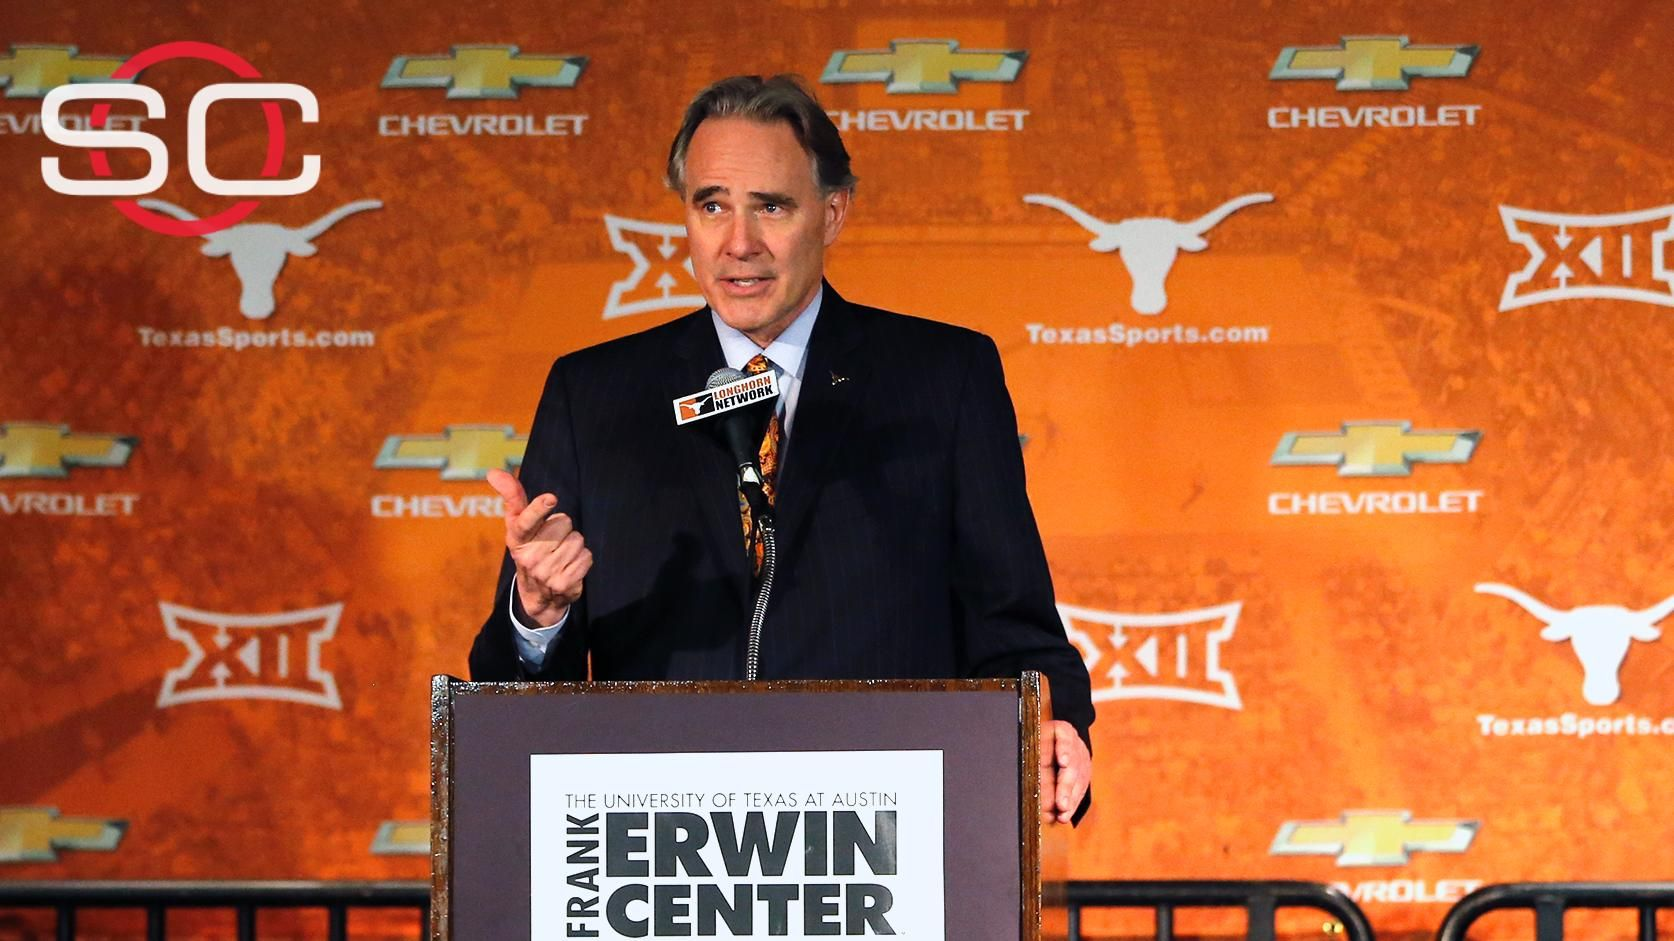 Clashes with fans, boosters led to Patterson's demise at Texas